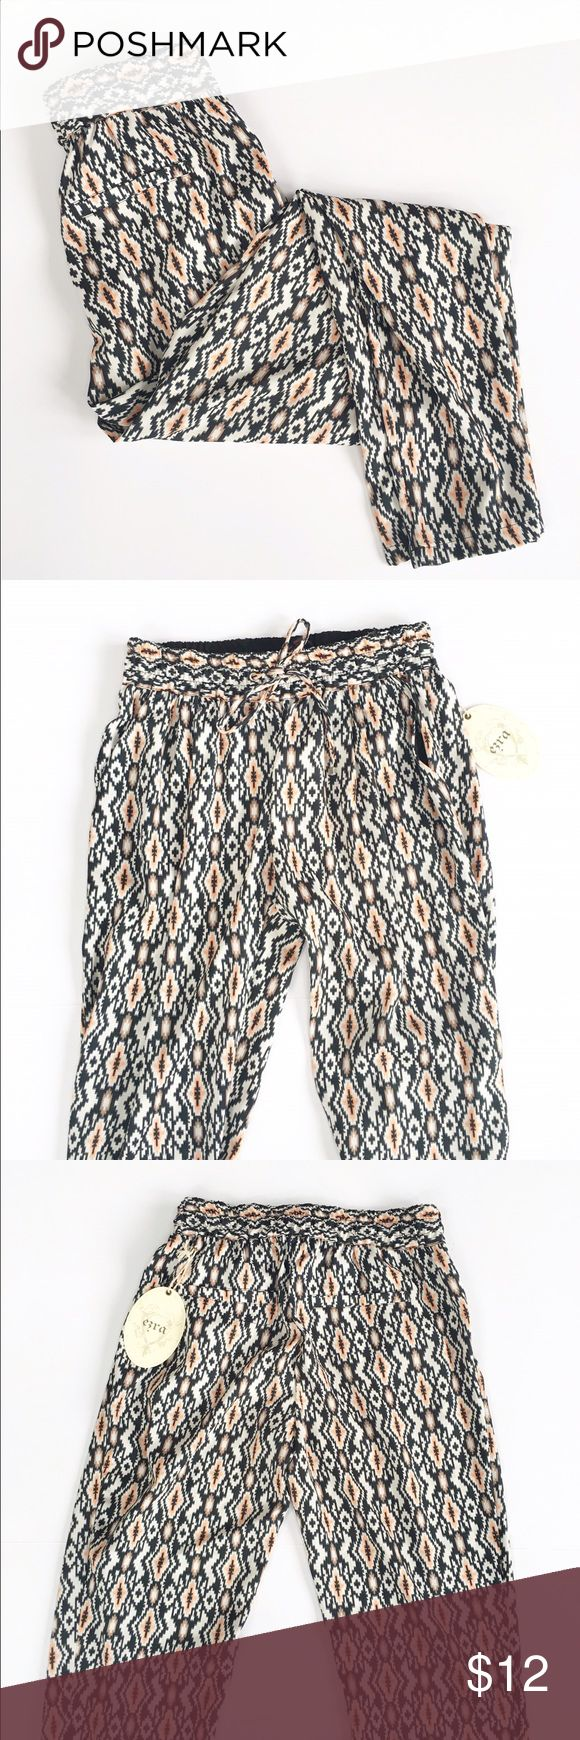 Aztec print pants Cute and comfy Aztec print pants, size small, NWT! Fully lined, feature drawstring and pockets. Inseam is 36 inches. Bershka Pants